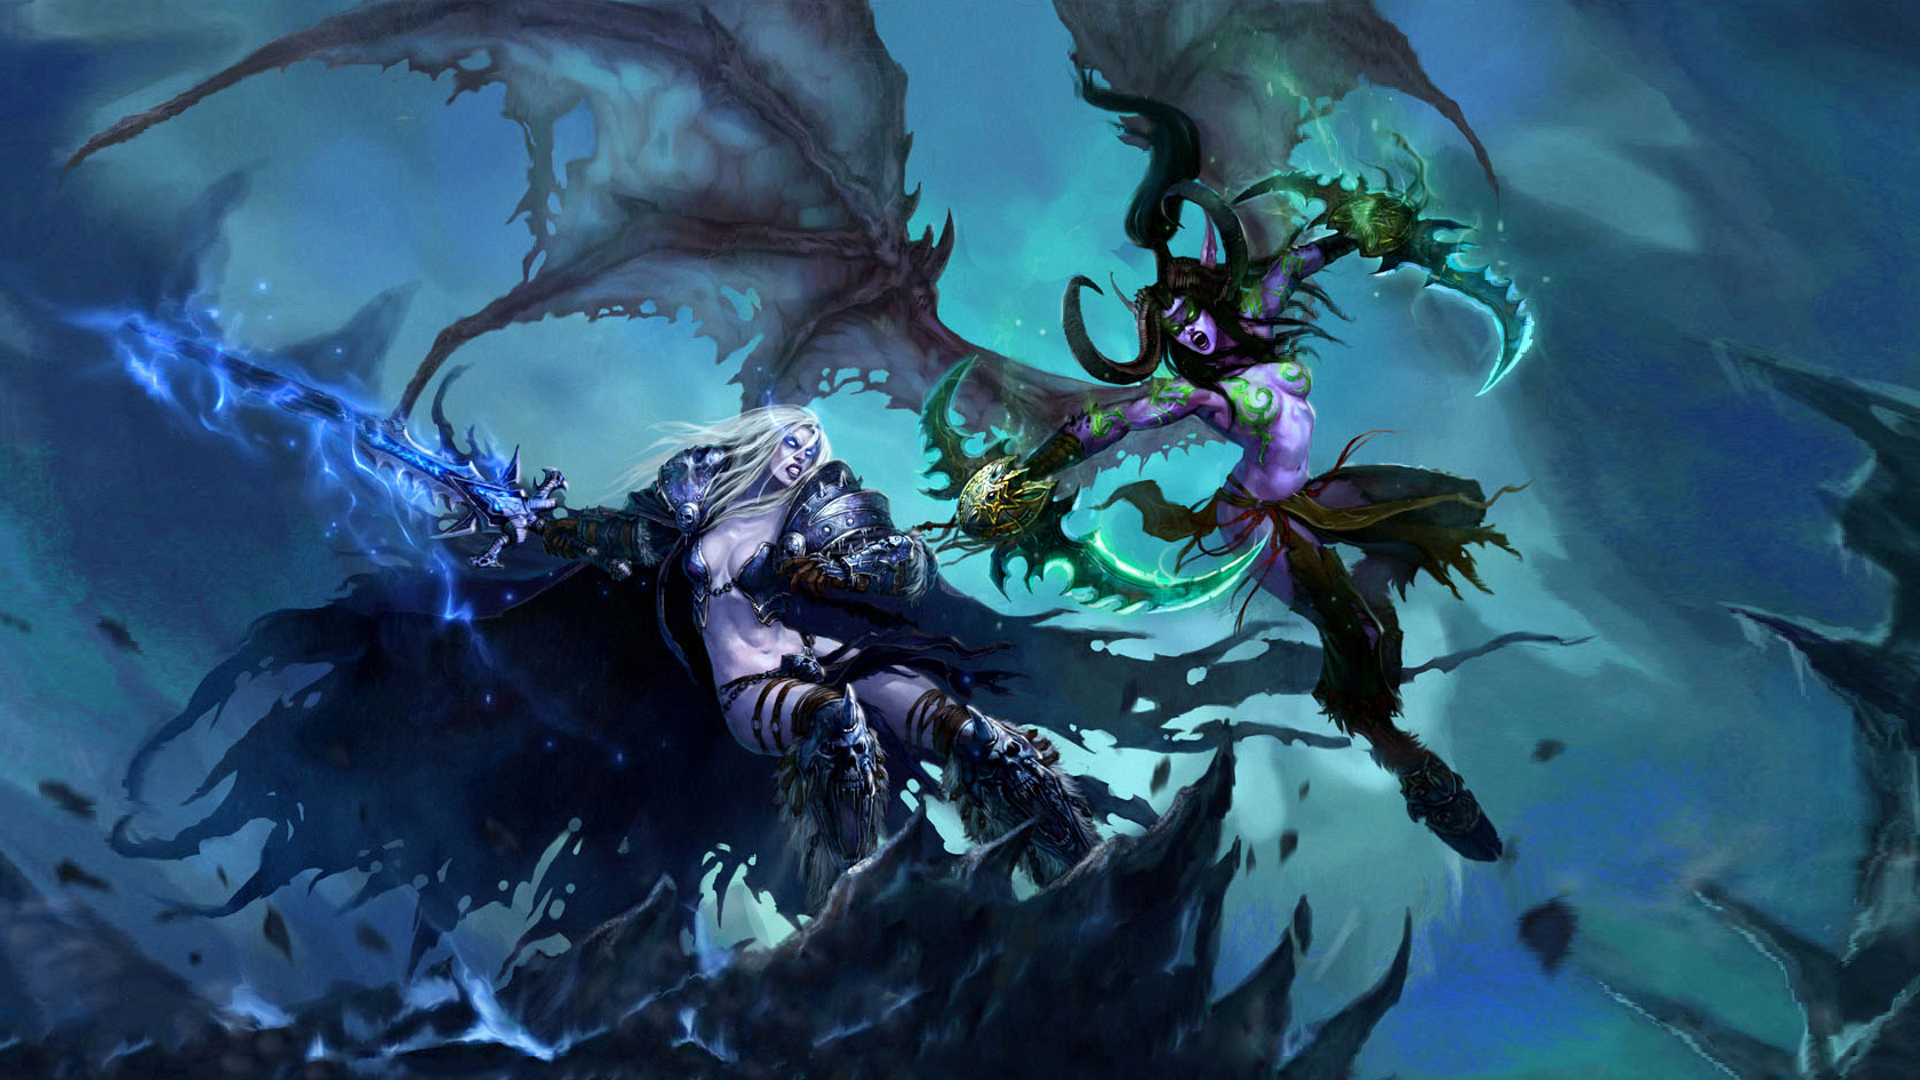 World of Warcraft Game Wallpapers | Best Wallpapers